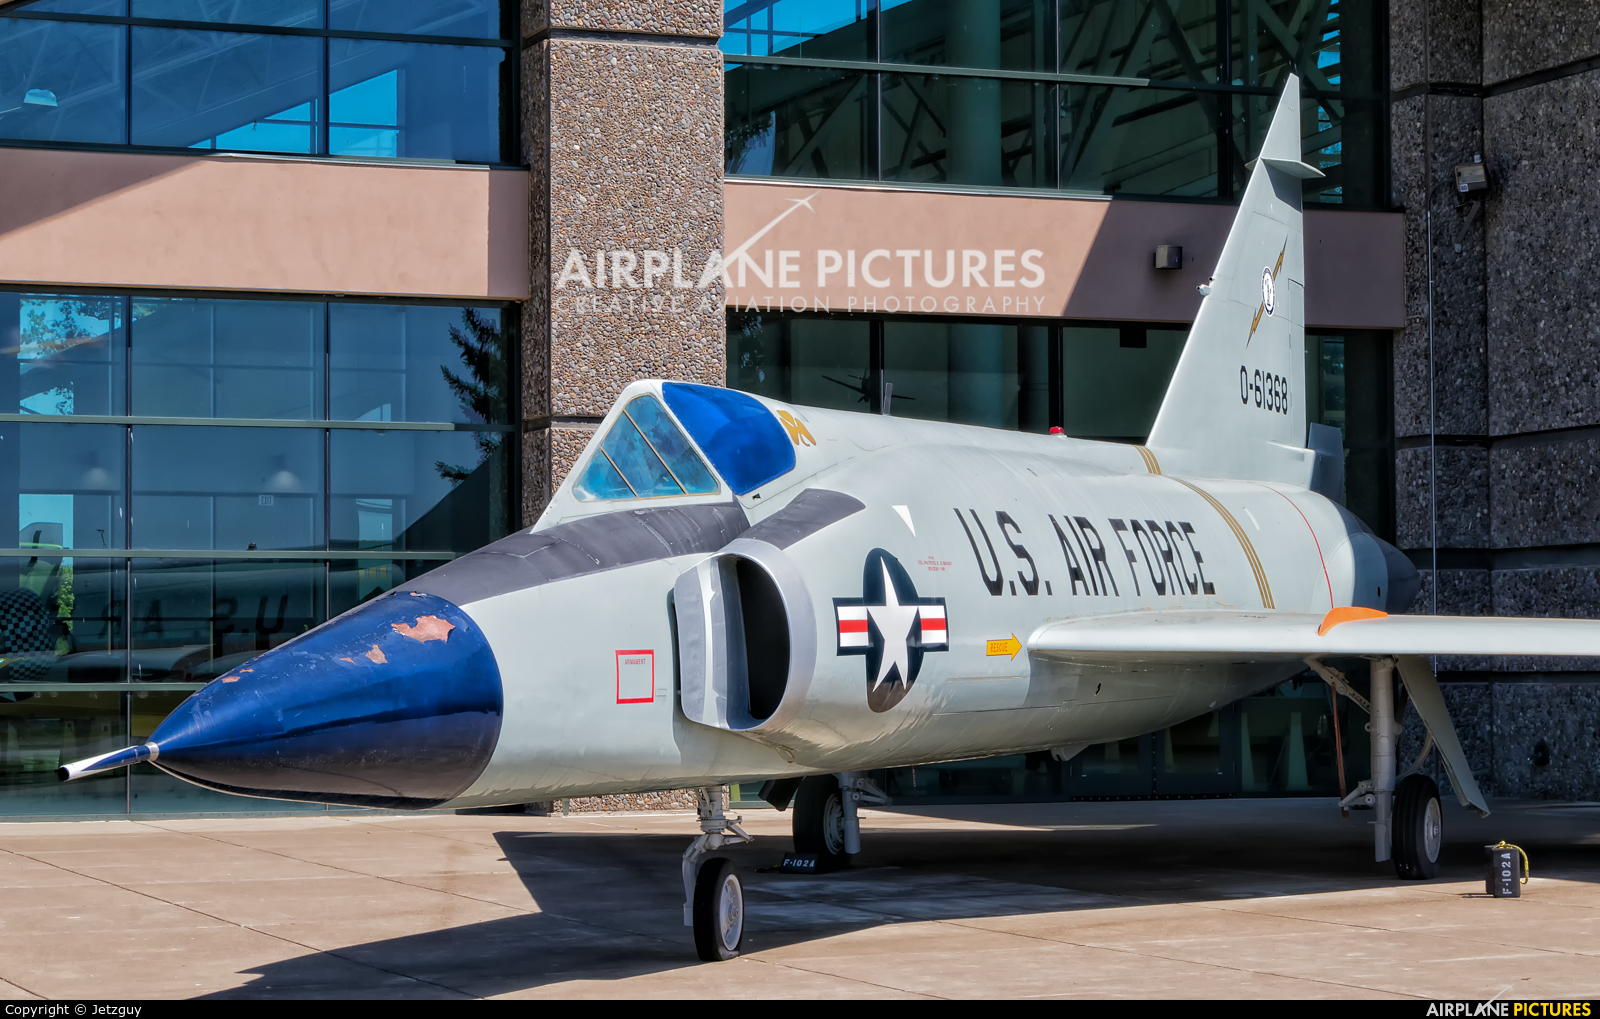 USA - Air Force 56-1368 aircraft at McMinnville - Evergreen Aviation & Space Museum